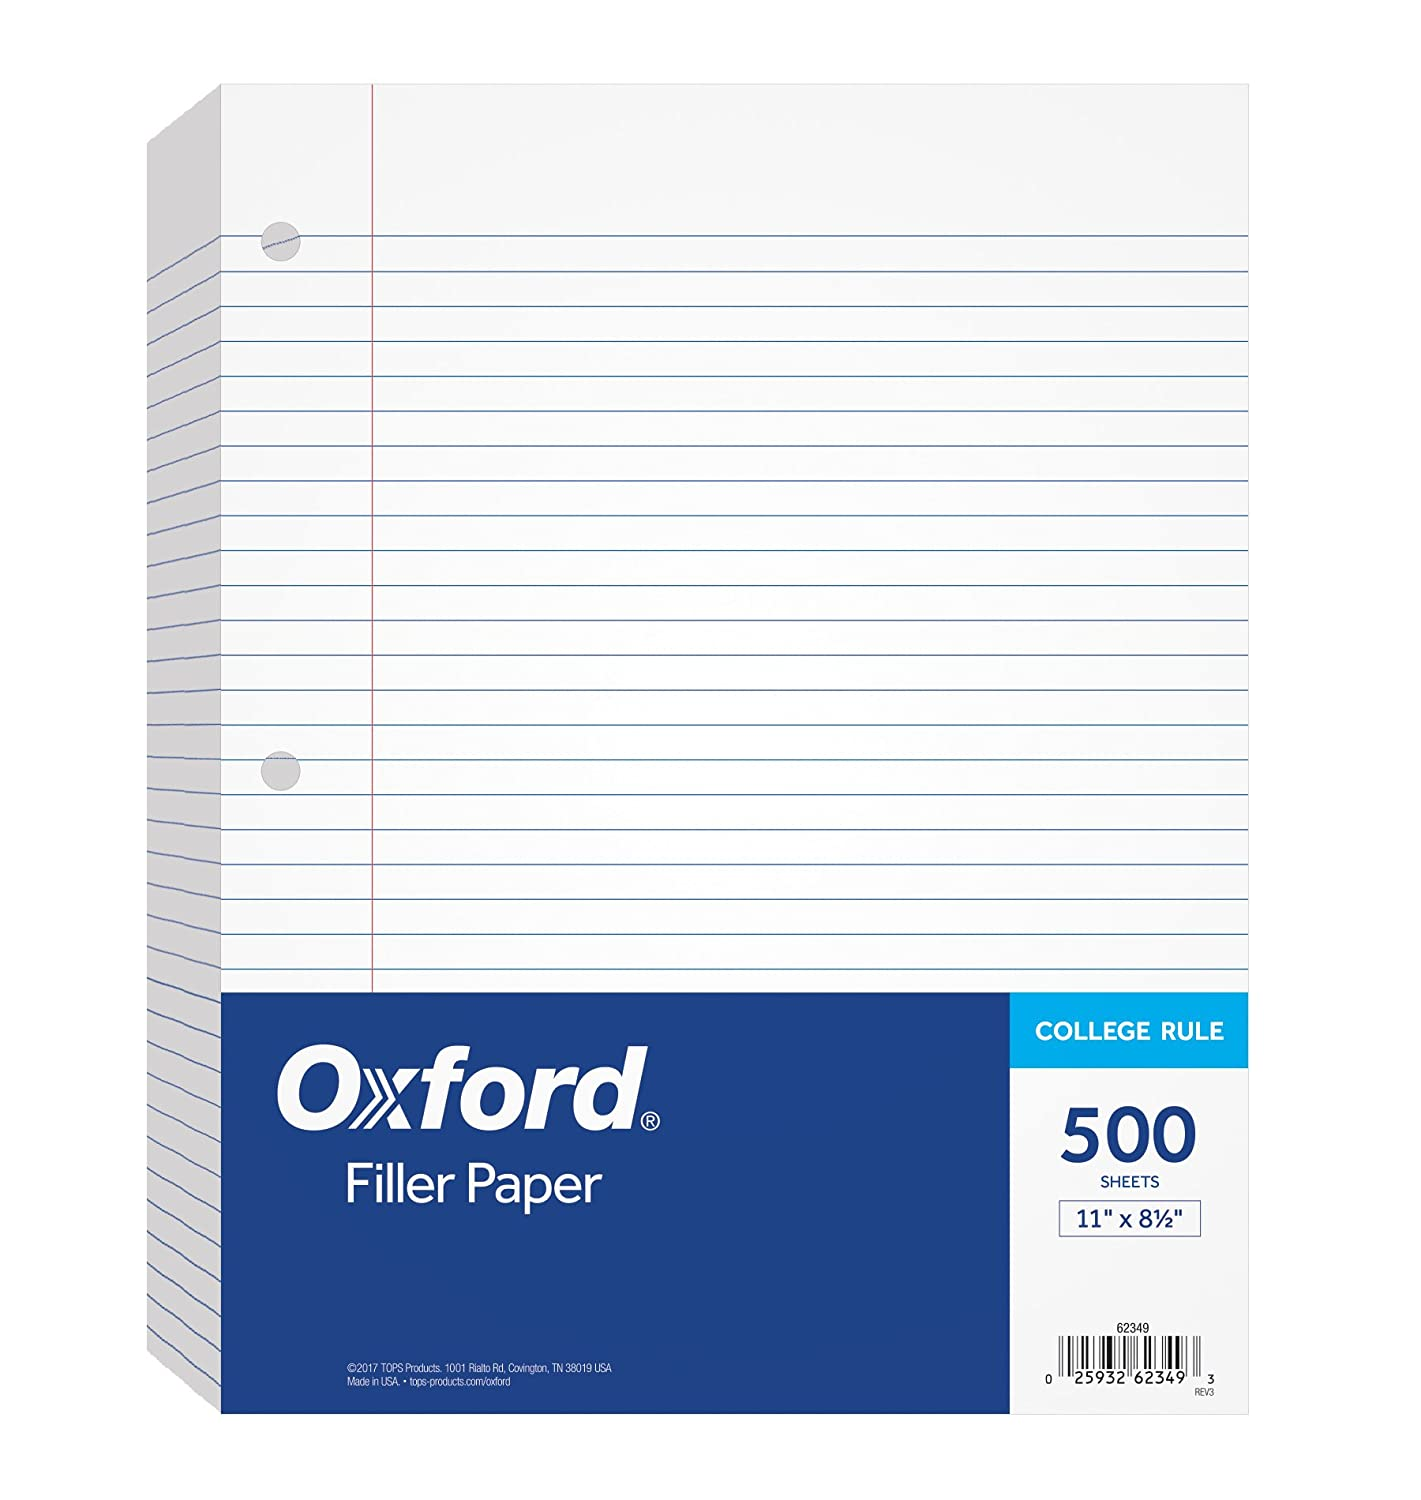 Oxford Filler Paper 8 1 2 X 11 College Rule 3 Hole Punched Loose Leaf For Ring Binders 500 Sheets Per Pack 62349